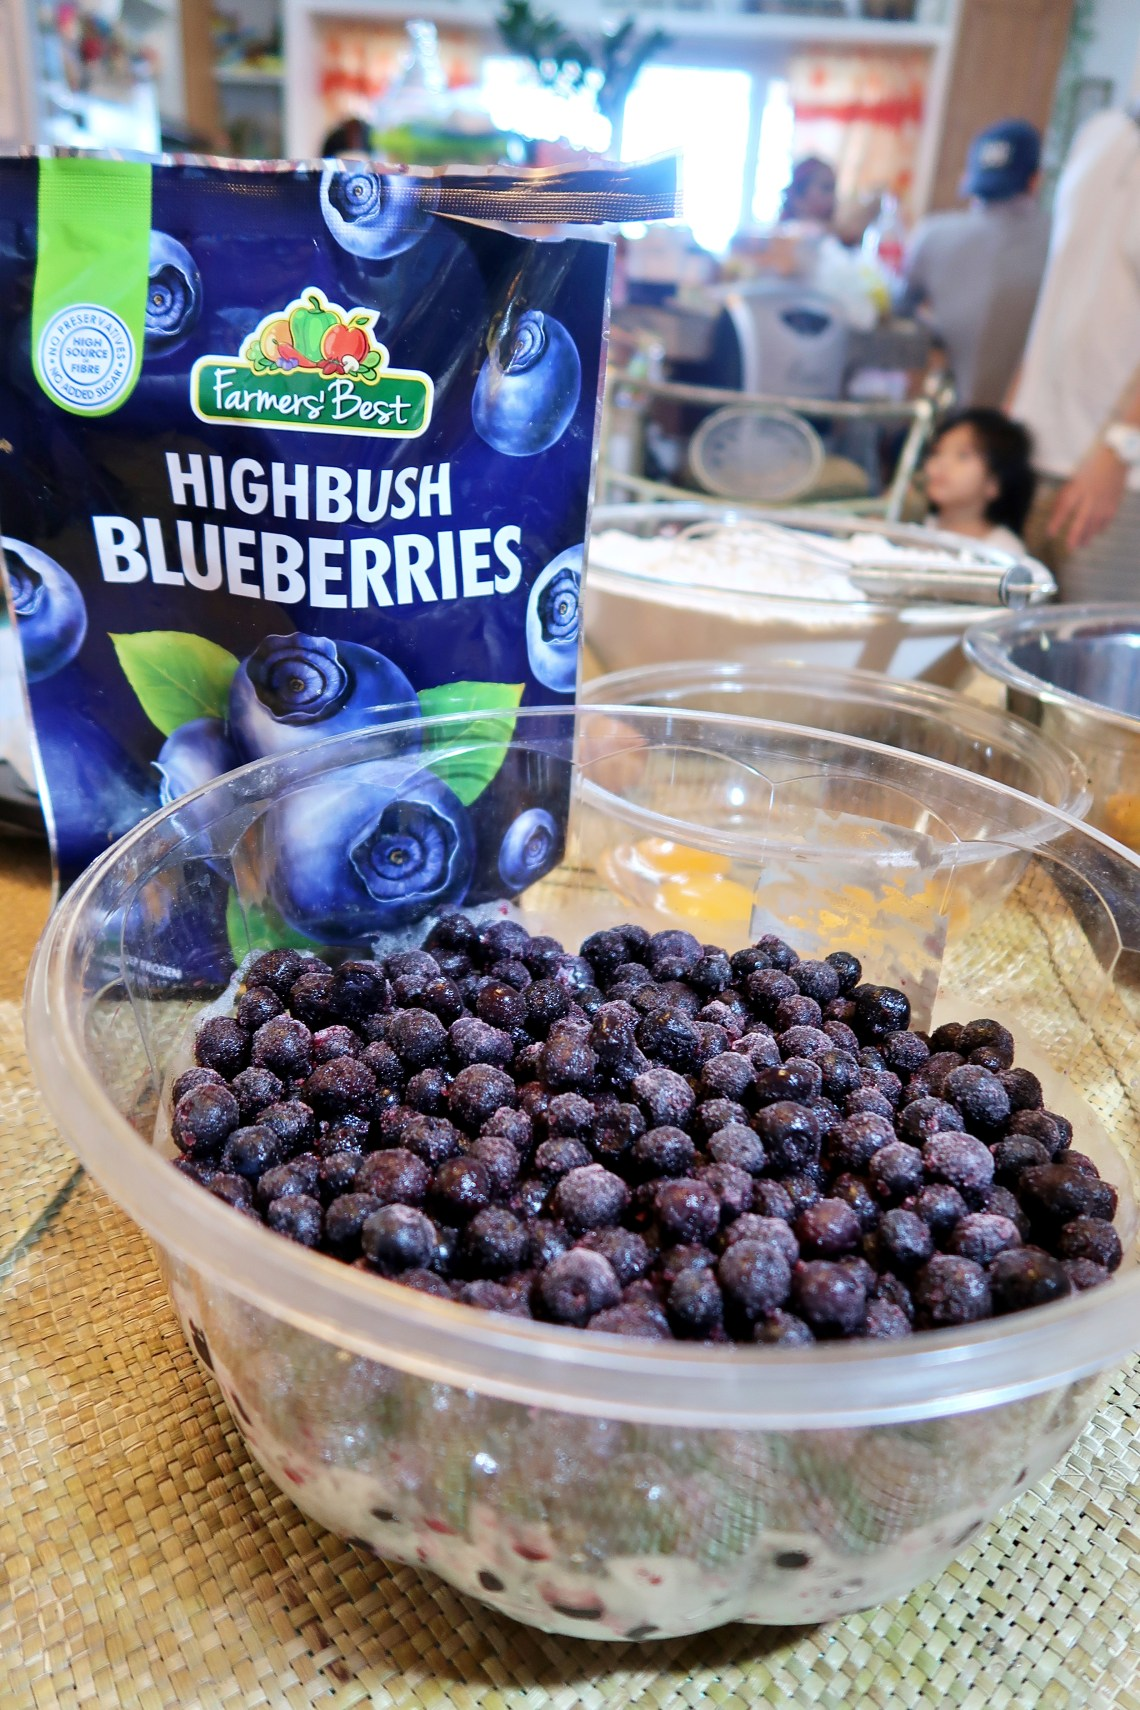 dyosathemomma-frozen US Blueberries-blueberry muffins recipe-facts about blueberries